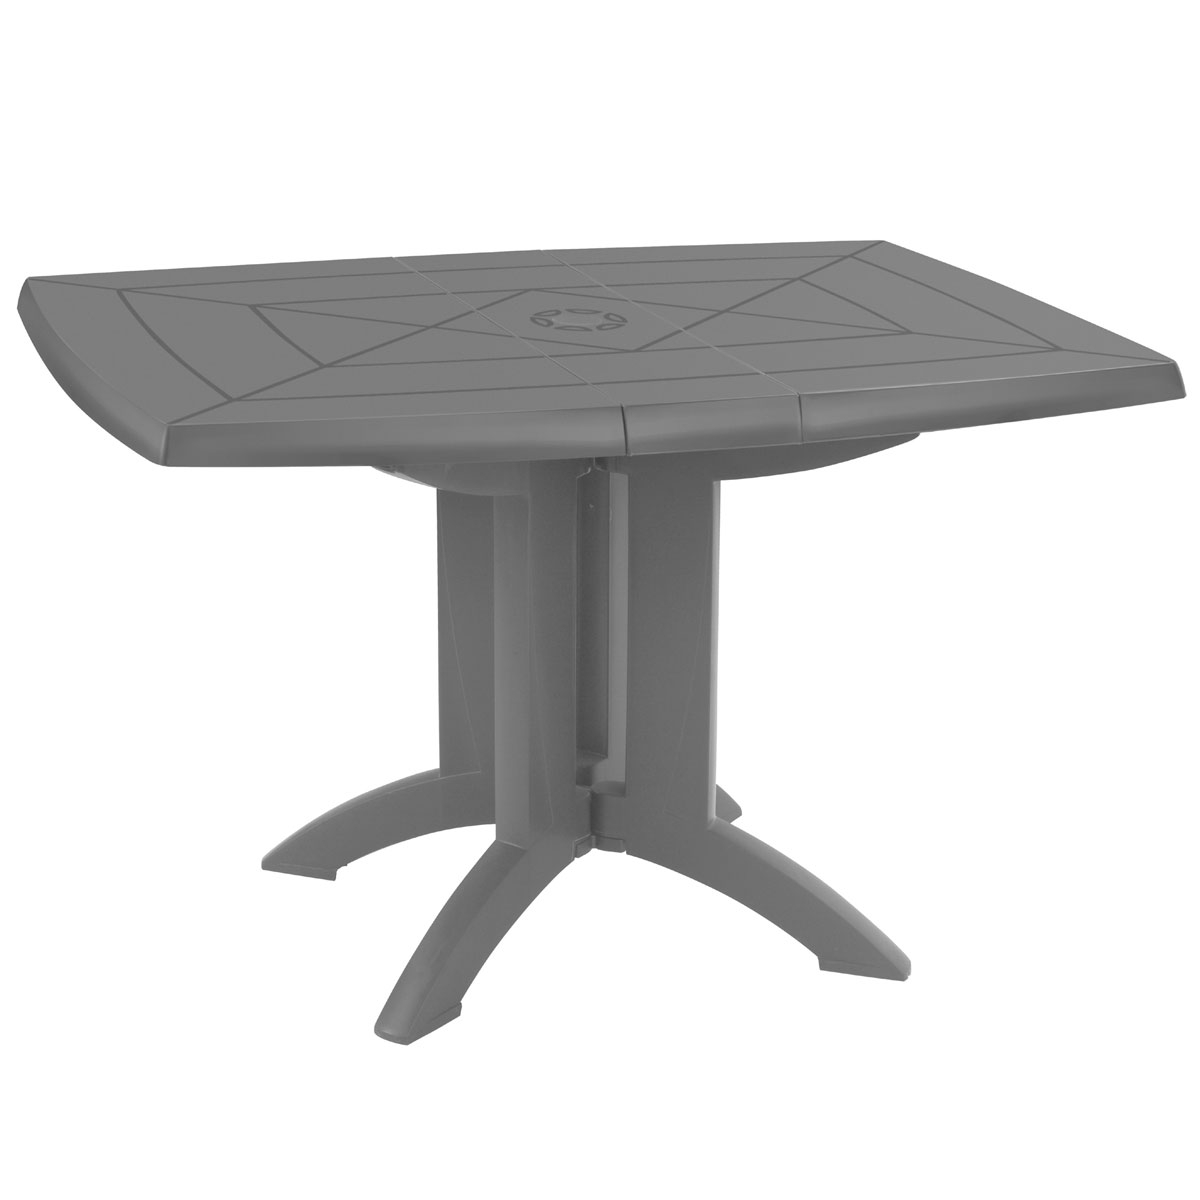 Table De Jardin Pliante Vega Grosfillex